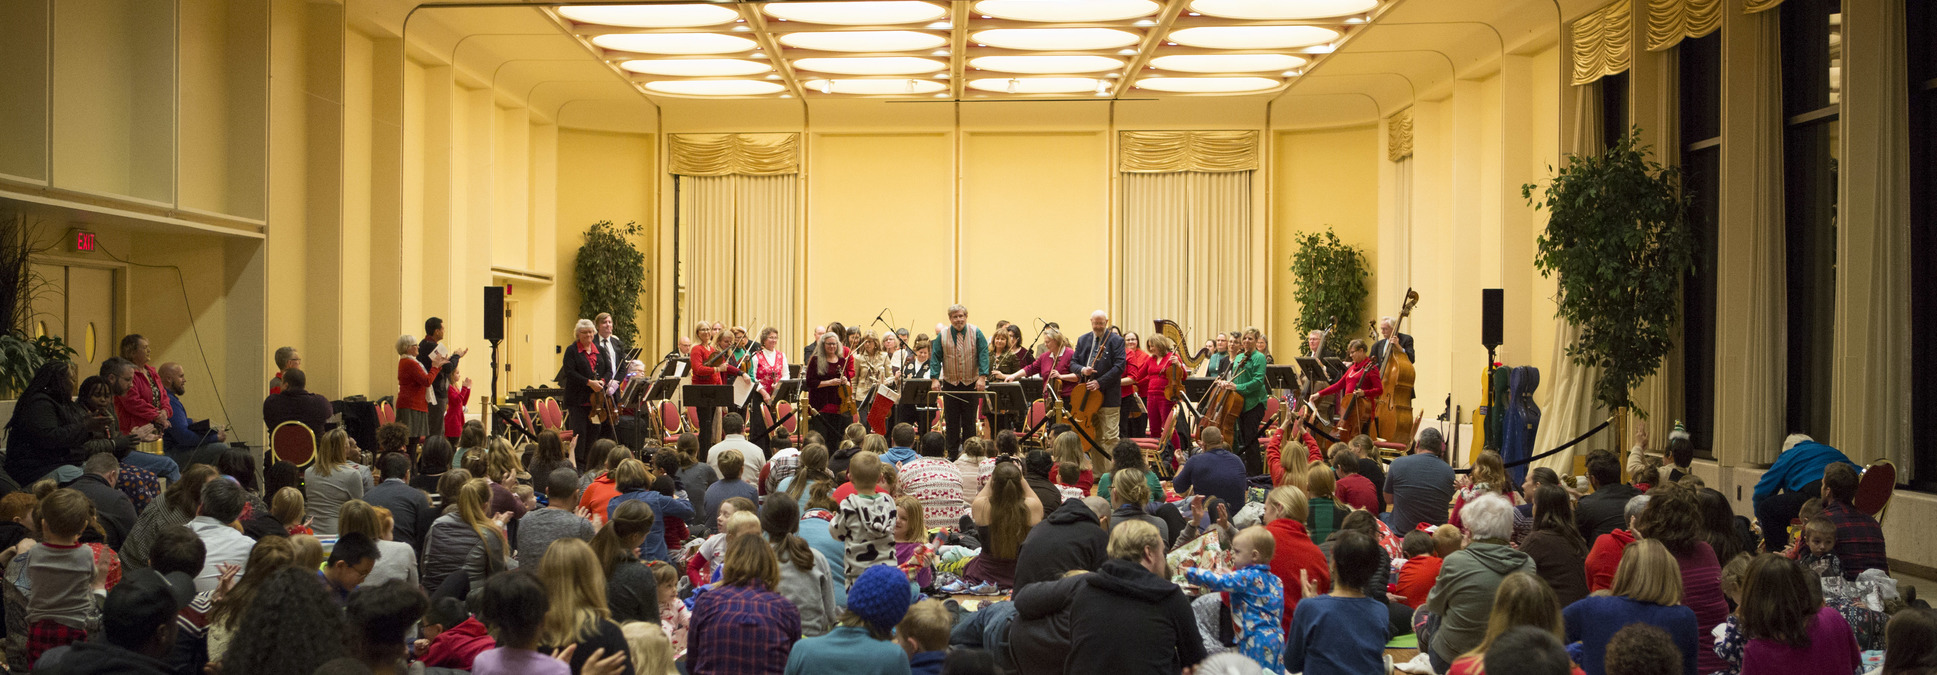 Holiday Pajama Jamboree at the Marcus Center in Milwaukee